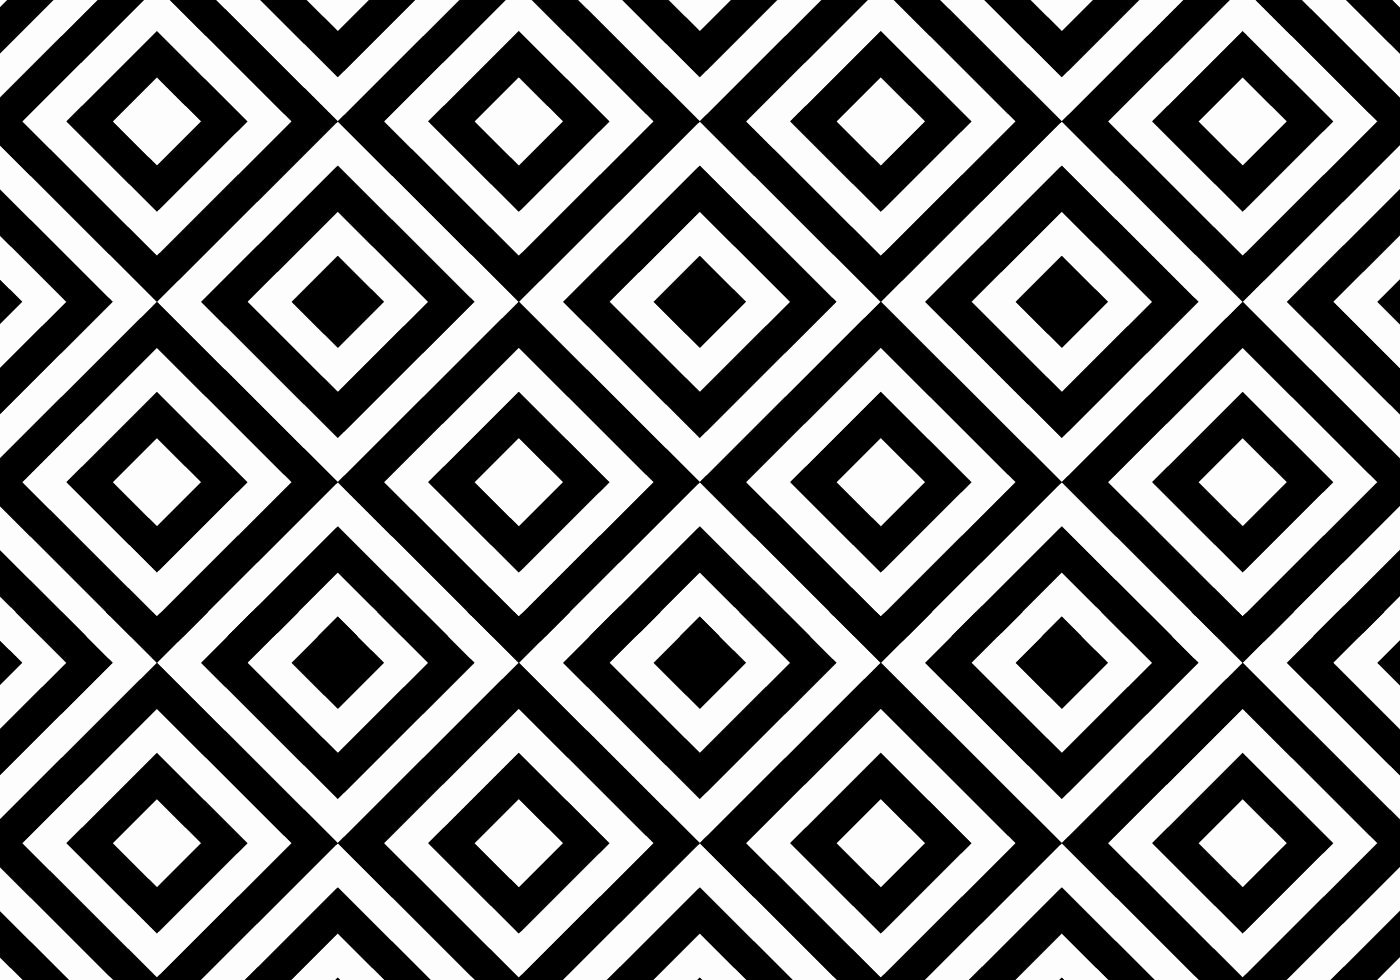 Black and White Pattern Elegant Blake Squared Diamond Pattern Download Free Vector Art Stock Graphics &